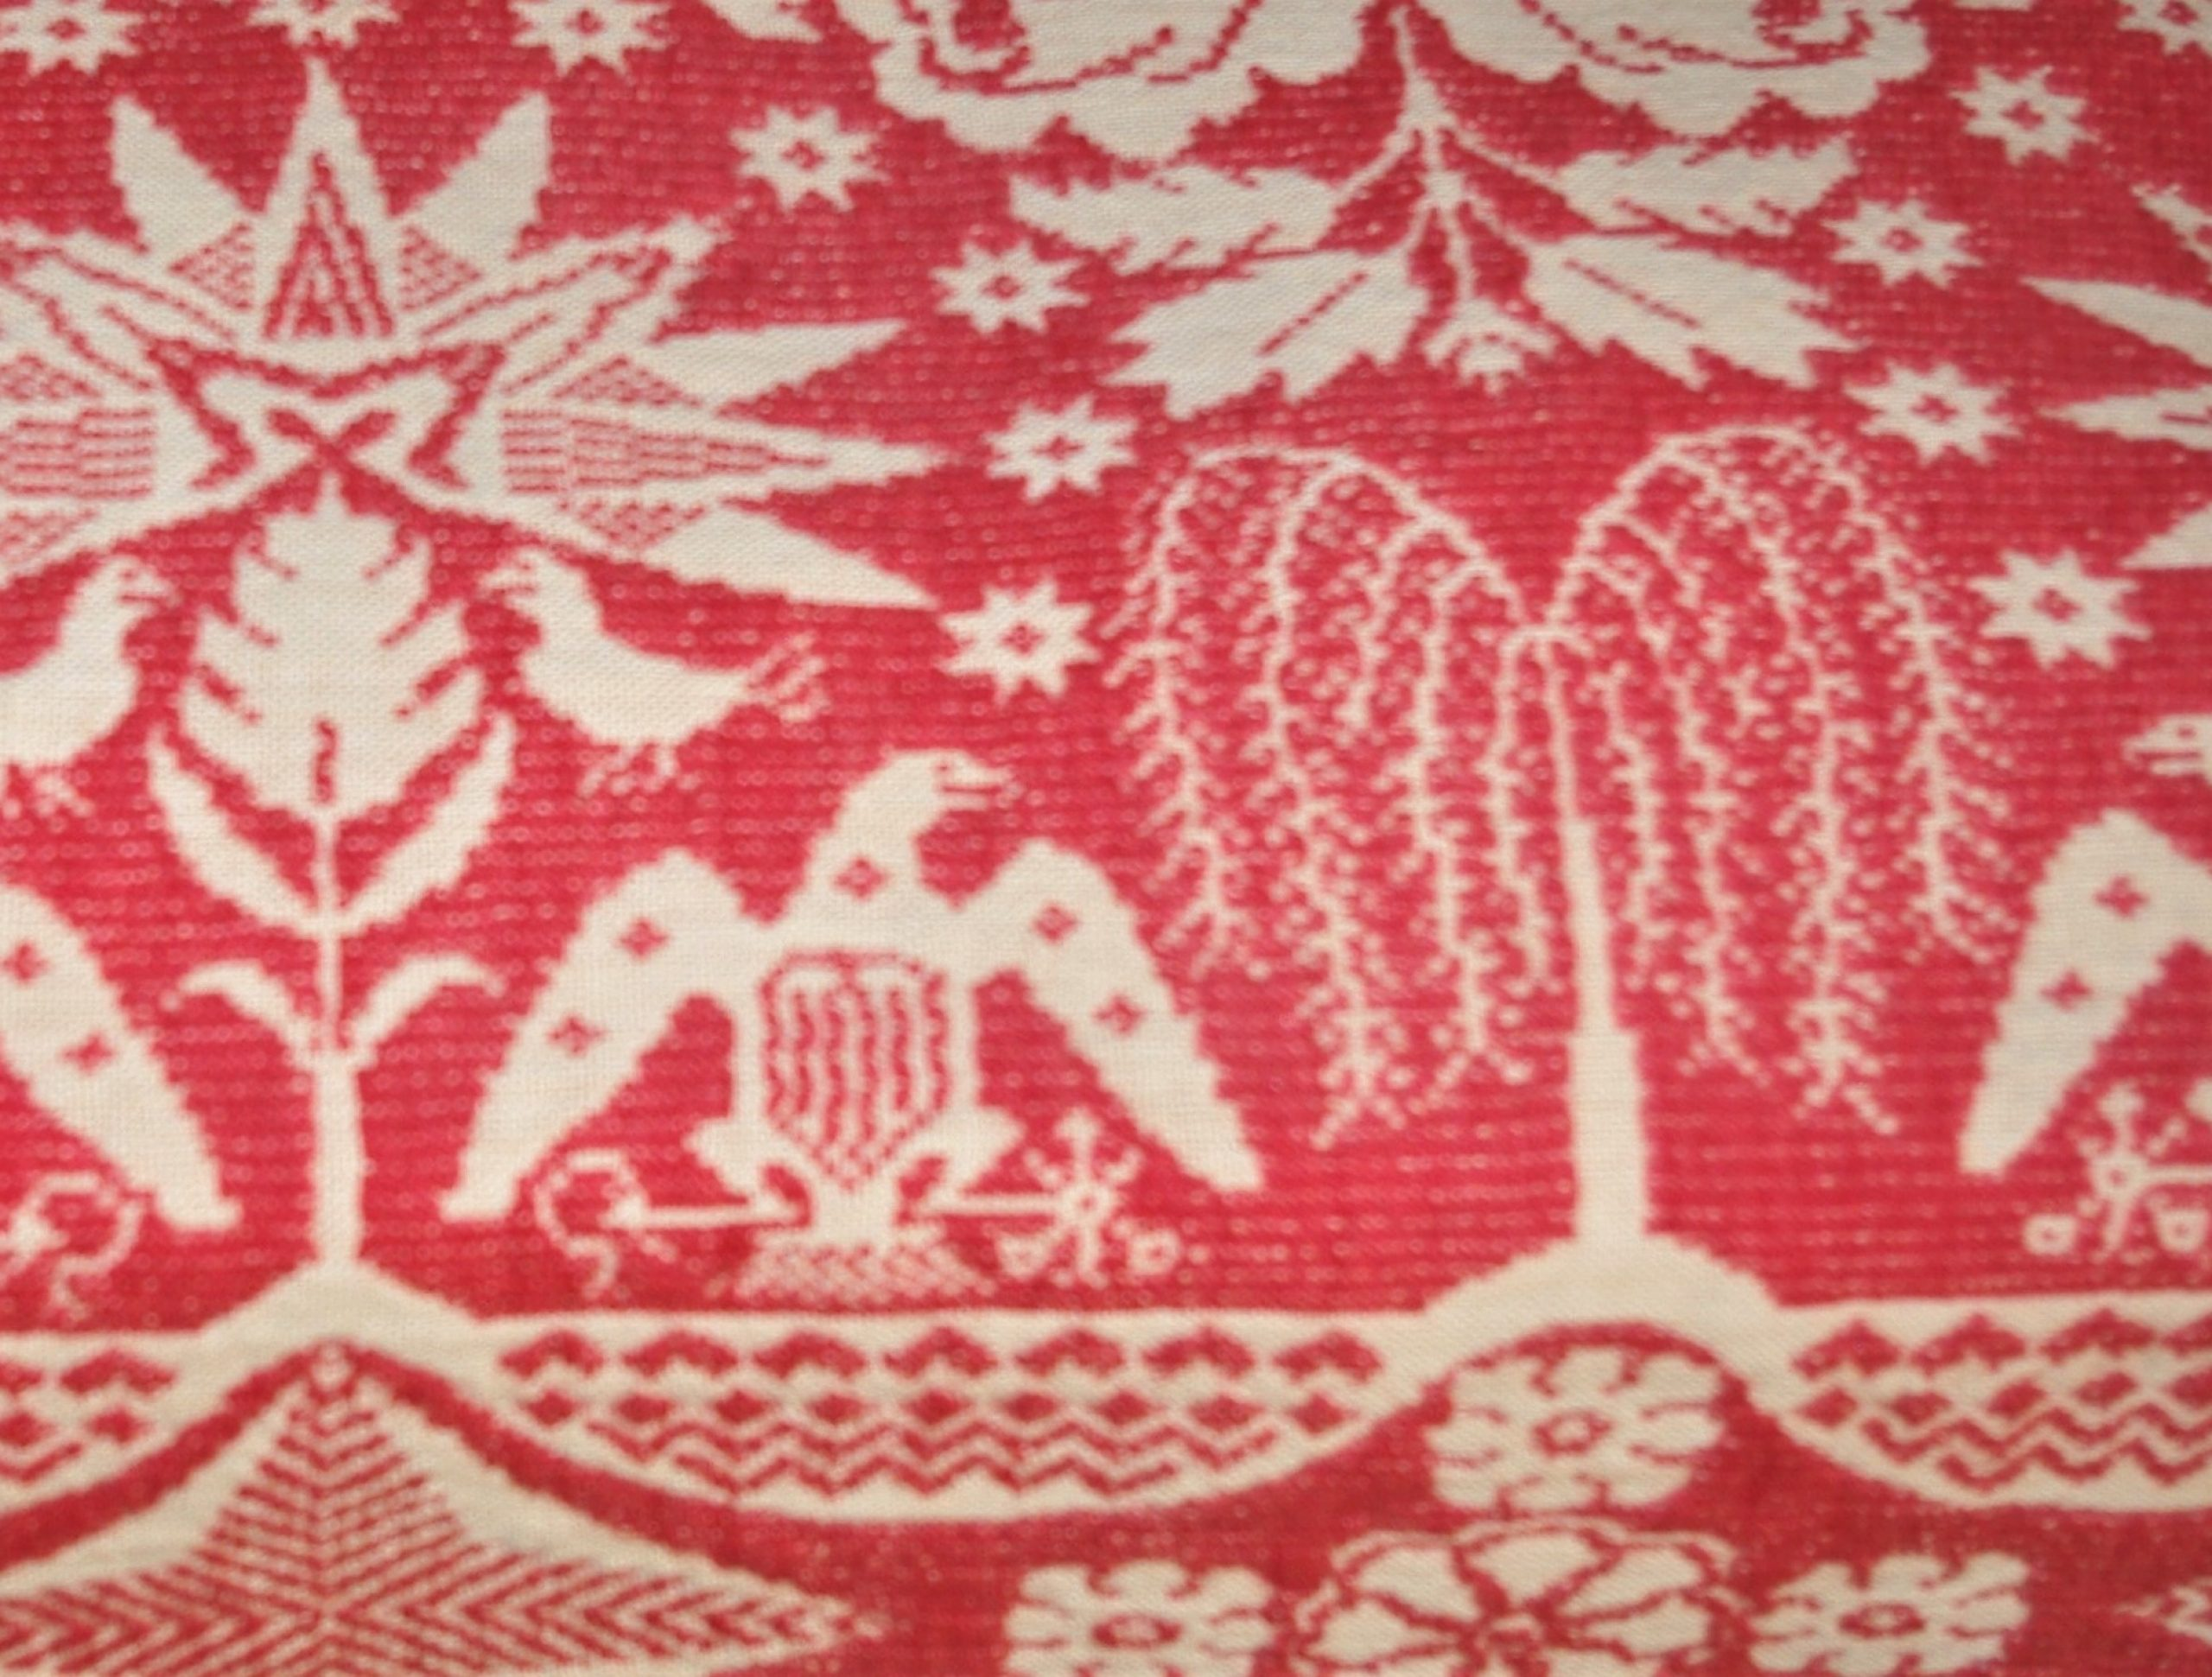 Cambell red coverlet, detail